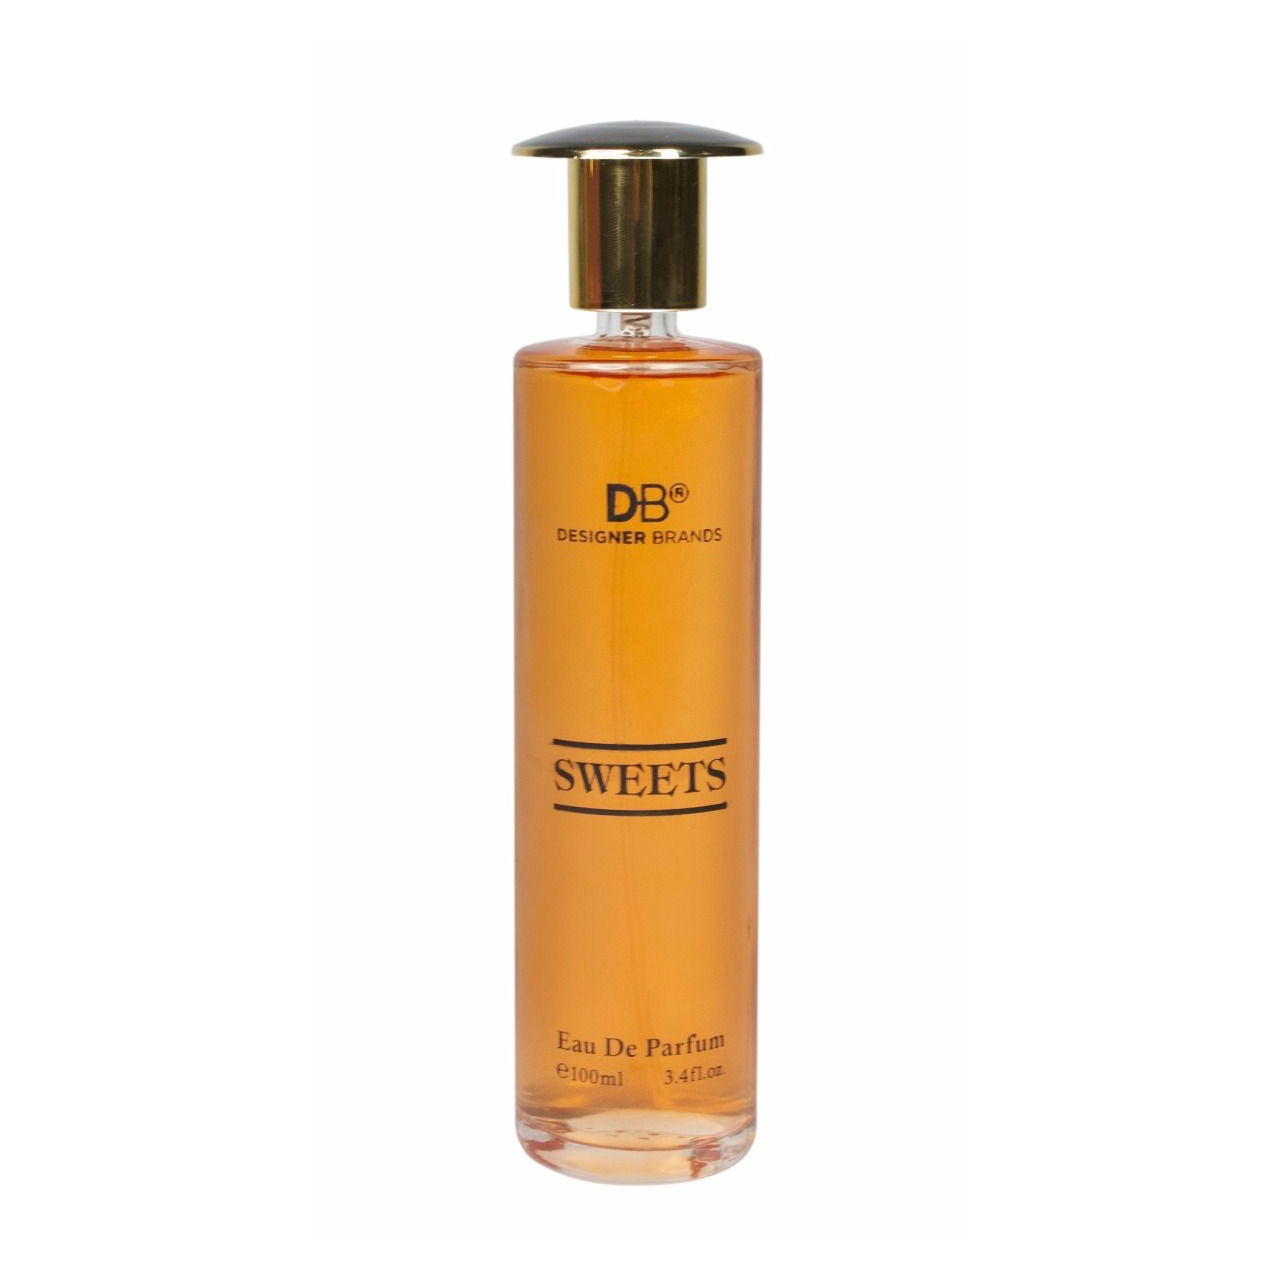 DB Cosmetics Fragrance -Sweets